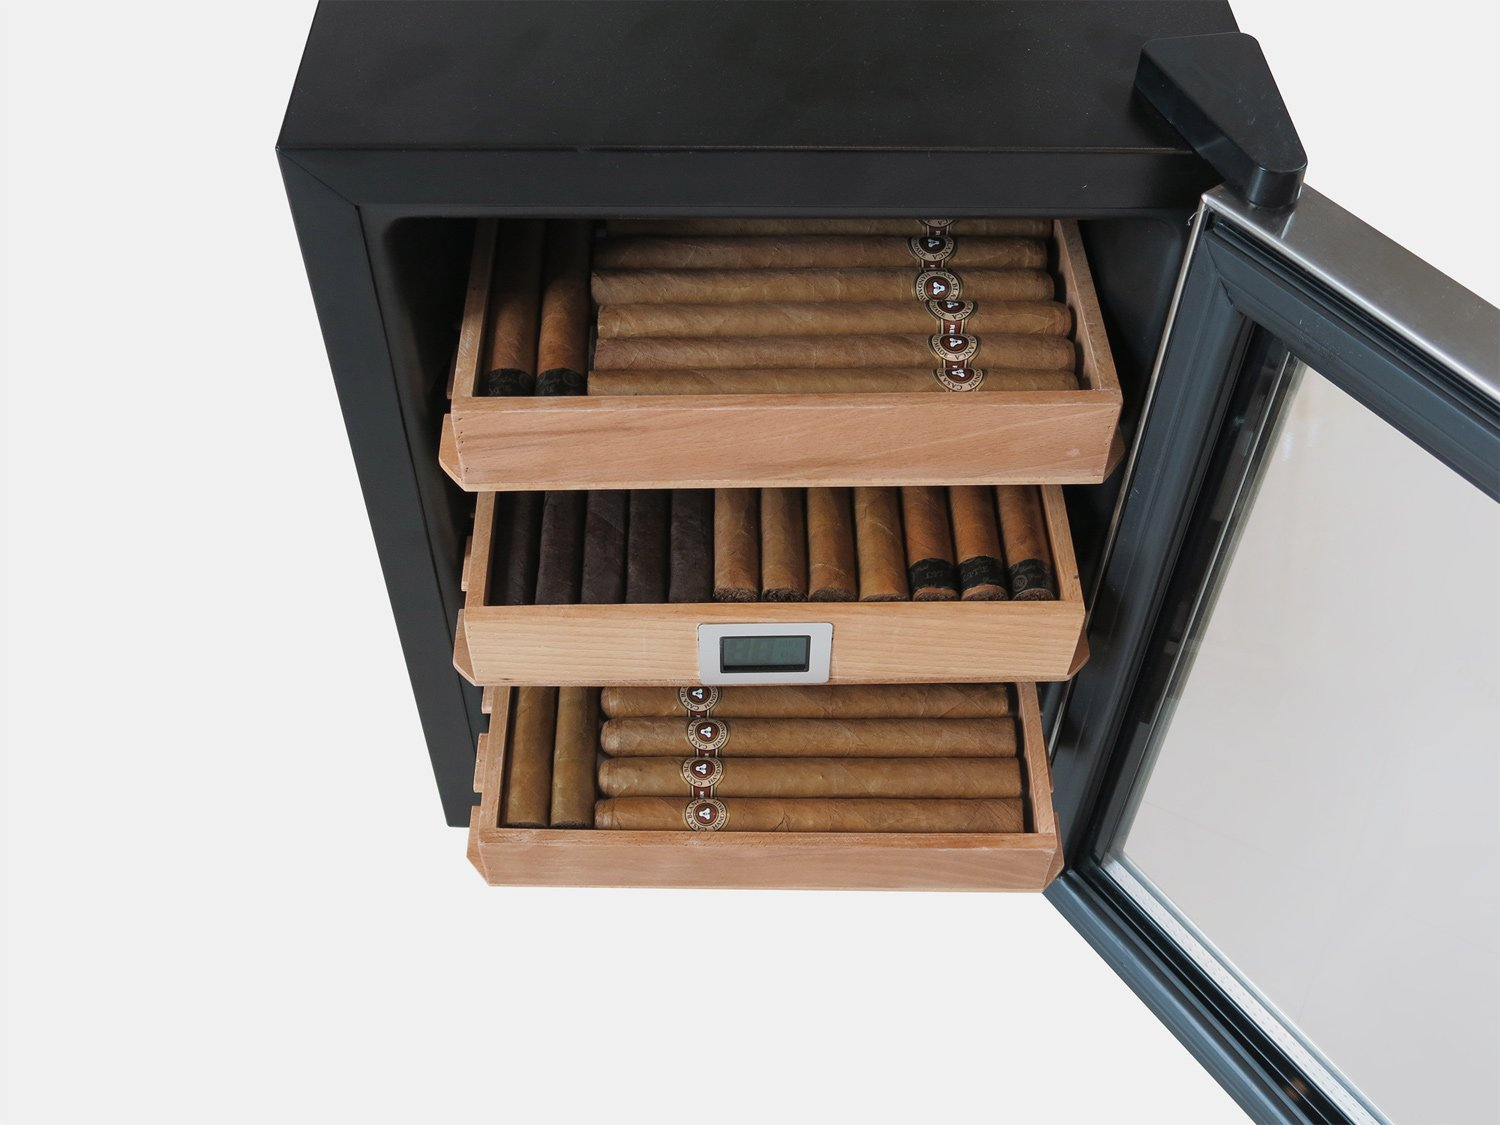 The Clevelander Thermoelectric Cigar Humidor Cooler - Color: Black w/ Stainless Steel Door by Prestige Import Group